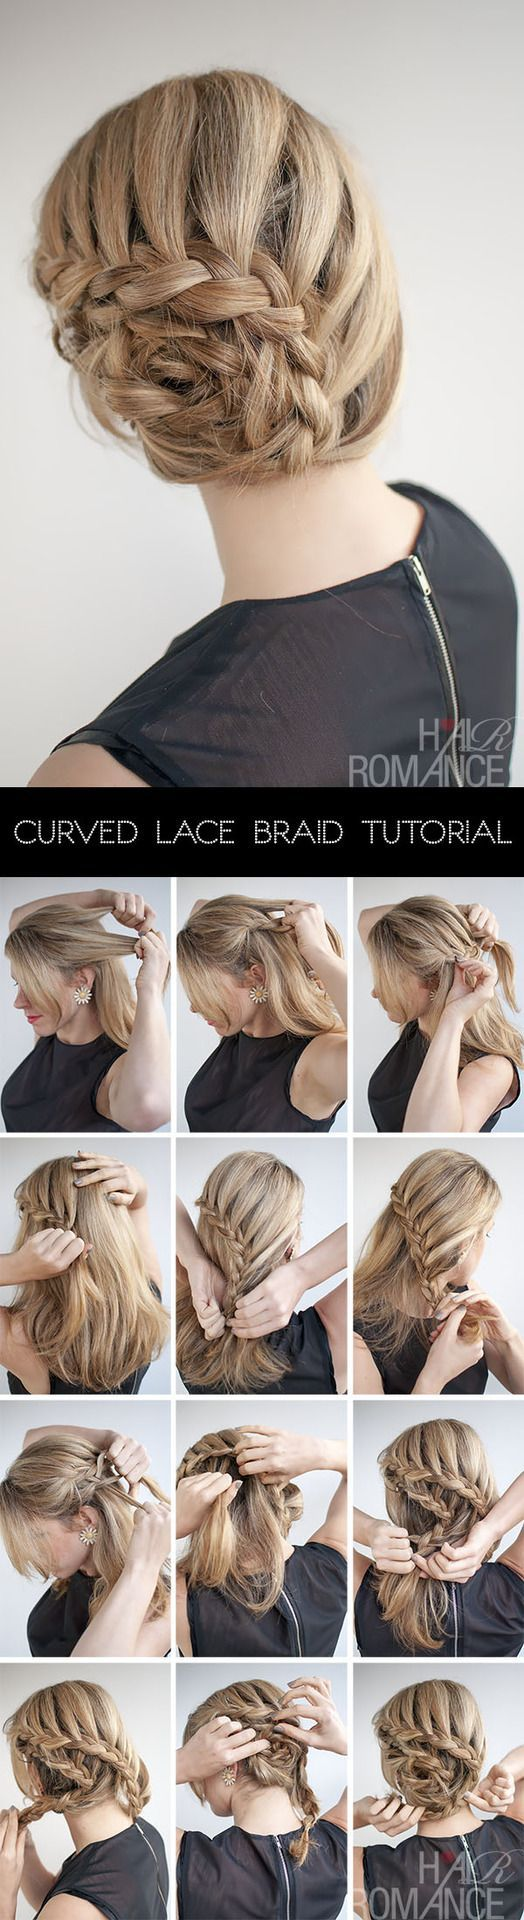 fabulous braided updo hairstyles with tutorials lace braid